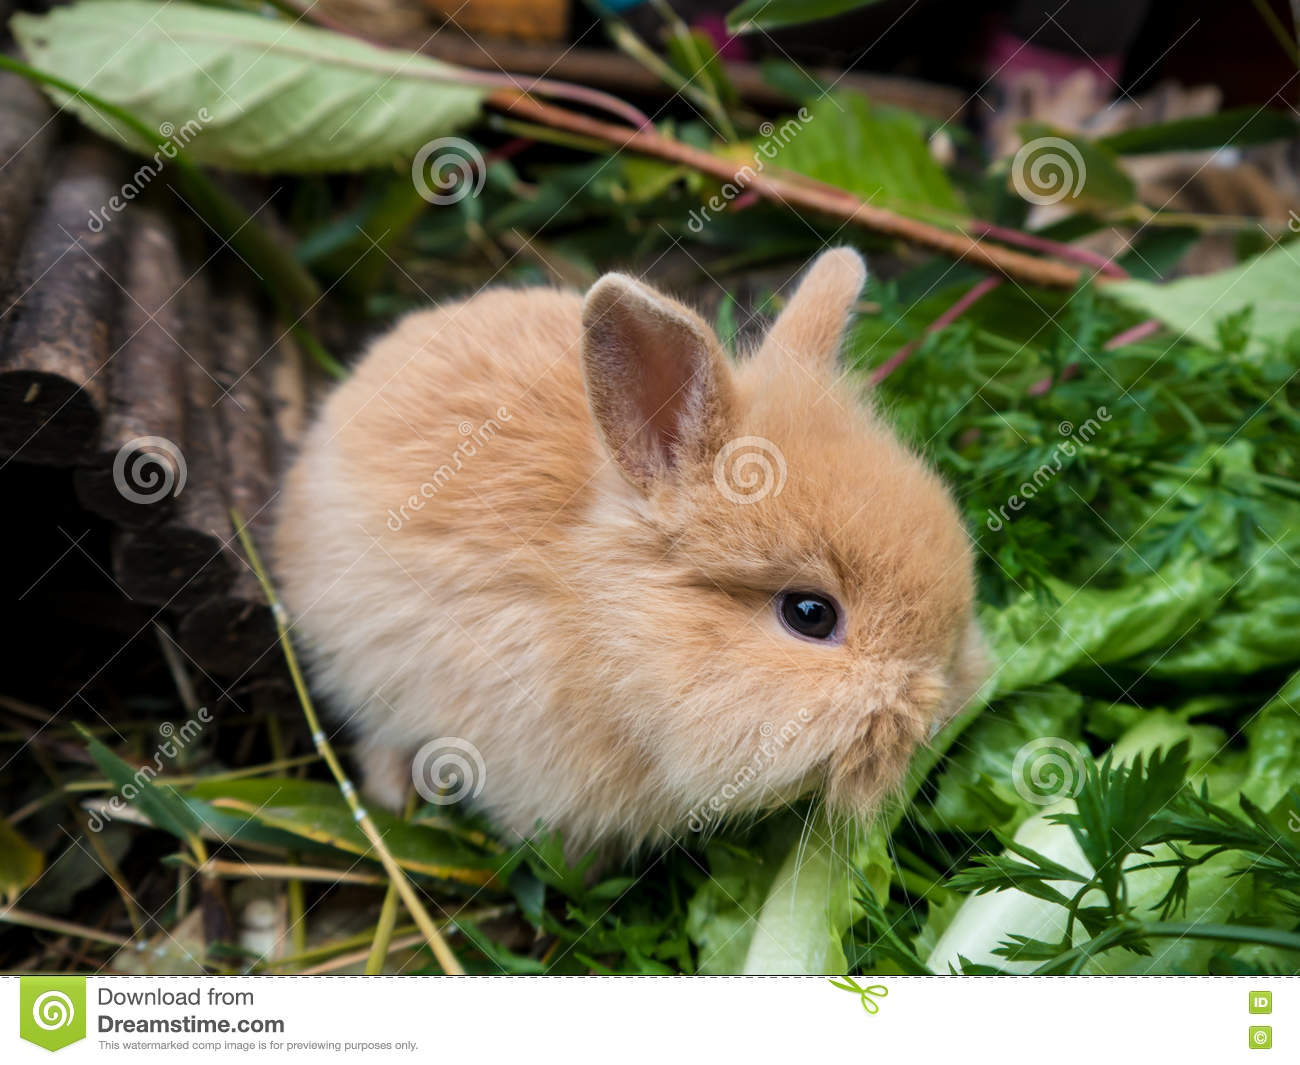 cute baby rabbit stock image image of fluffy young 80981119